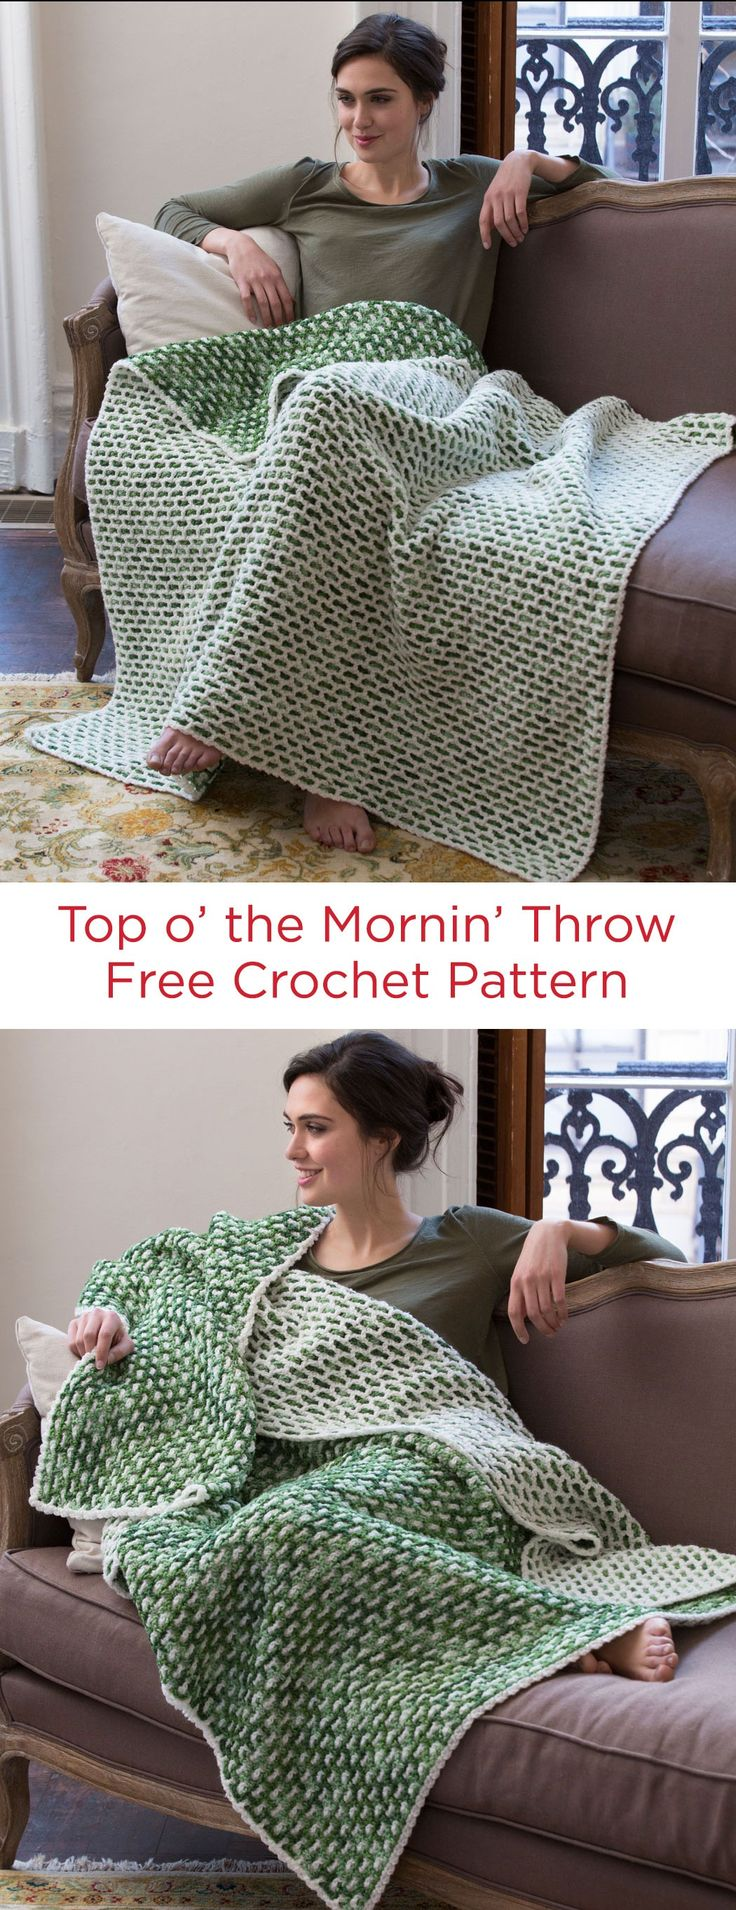 Top o' the Mornin' Throw Free Crochet Pattern in Red Heart Yarns -- Whether you're Irish or are just looking to crochet a wonderful reversible throw, this design is perfect! This ingenious stitch pattern may take a while to master, but you can be sure having this throw will feel like having a pot of gold.